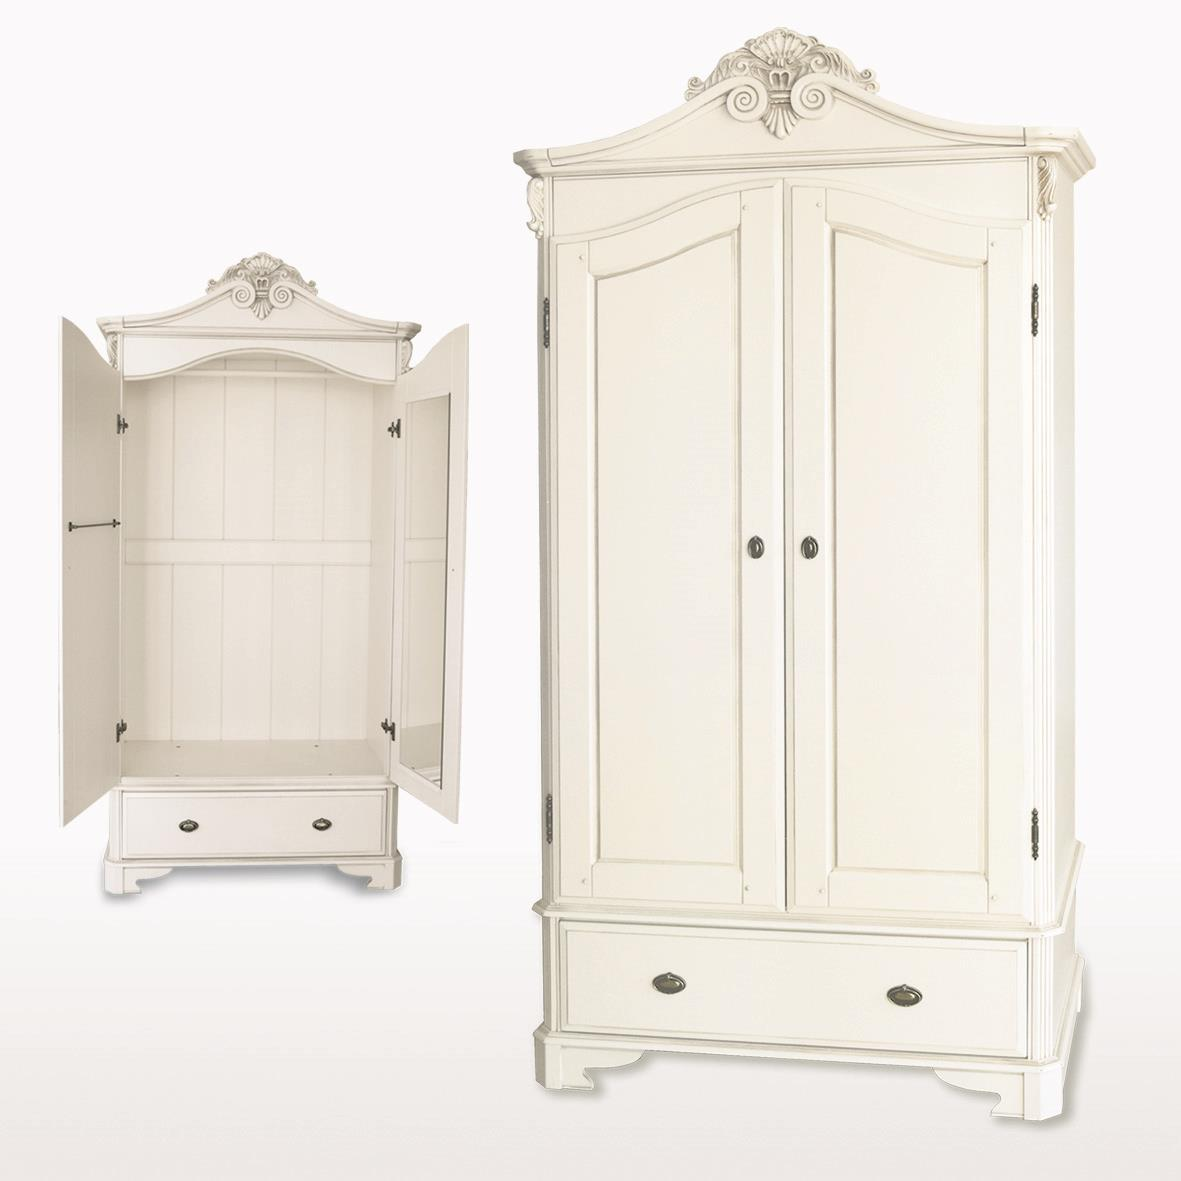 Amore Italian Style Bedroom Furniture By Tch Orchards